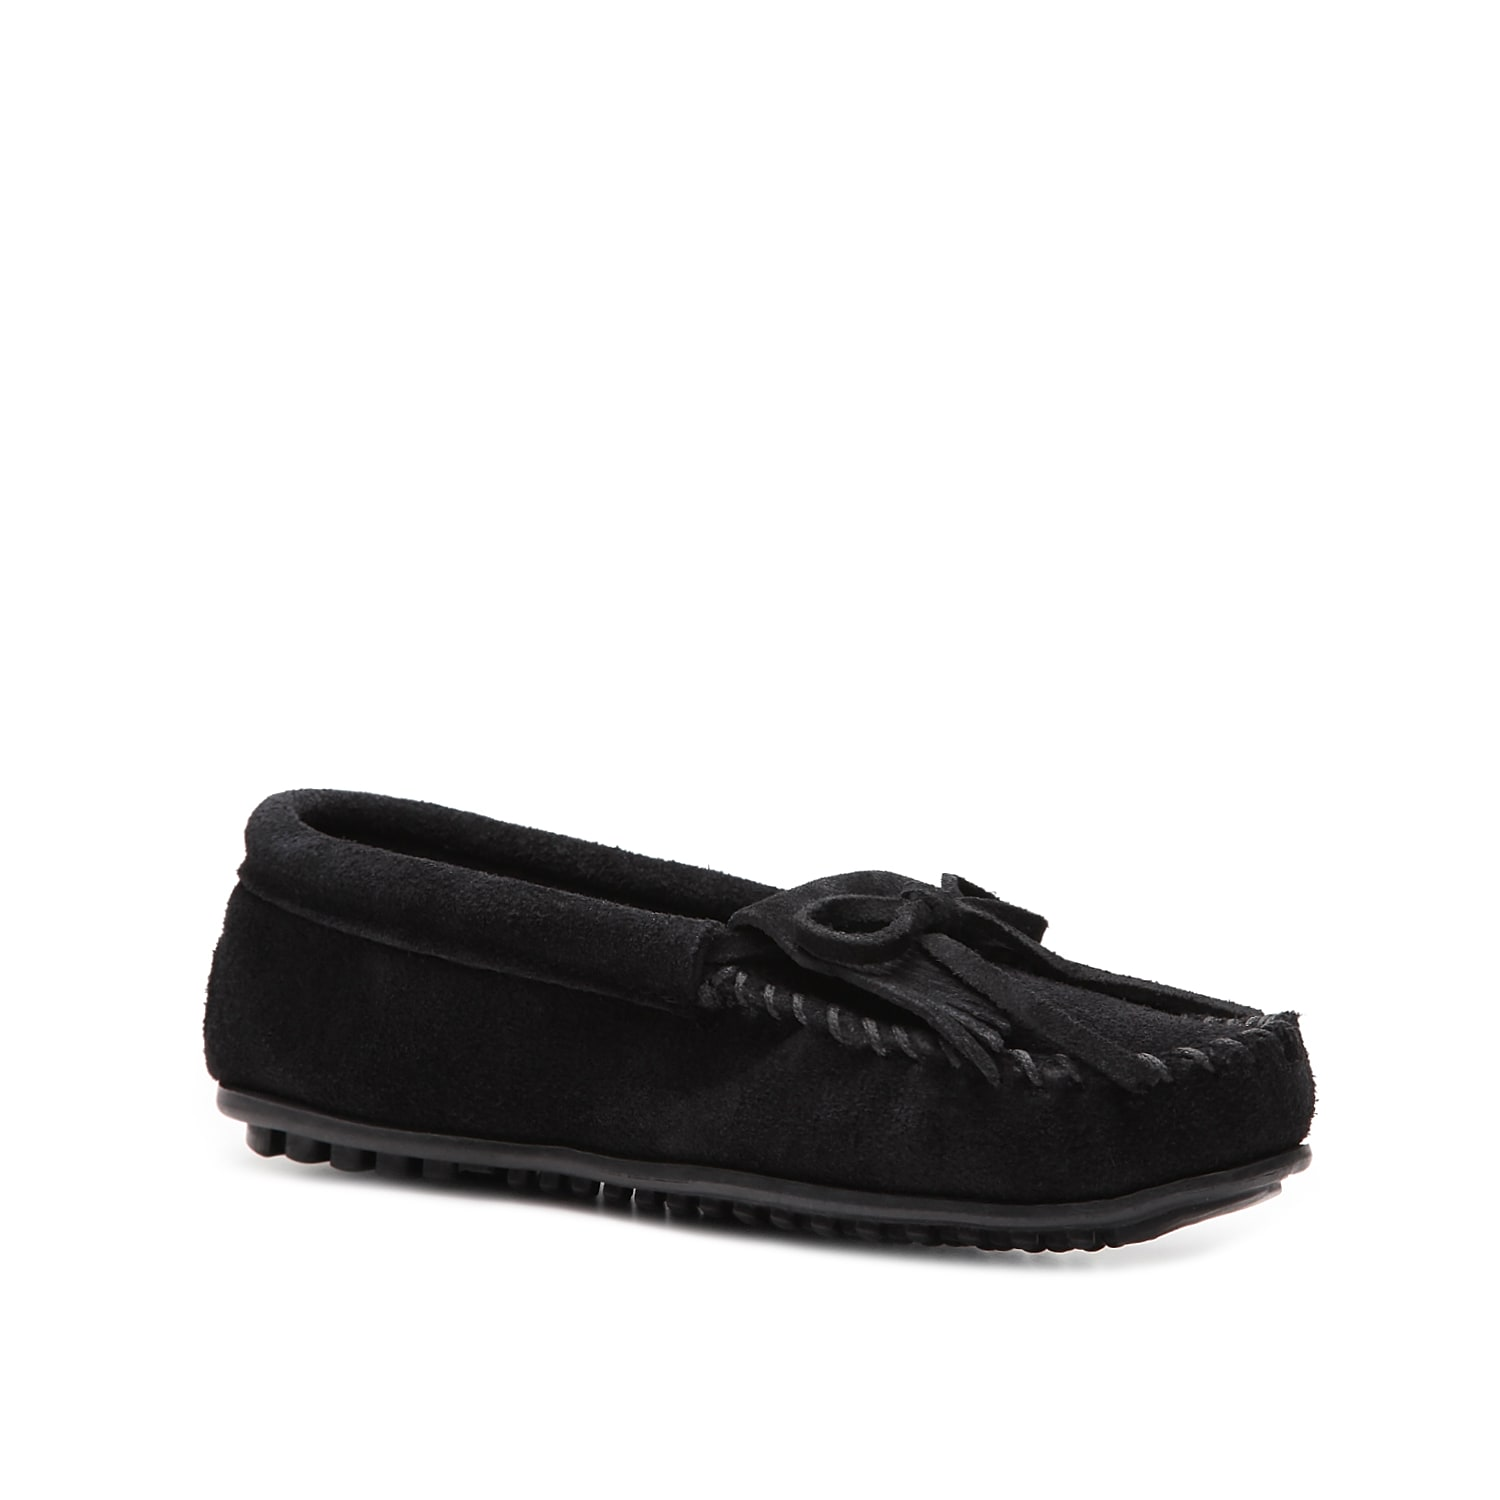 You\\\'ll look so cute in this trendy Kilty moccasin by Minnetonka! This flat is our favorite weekend basic due to its comfy construction and fun styling.